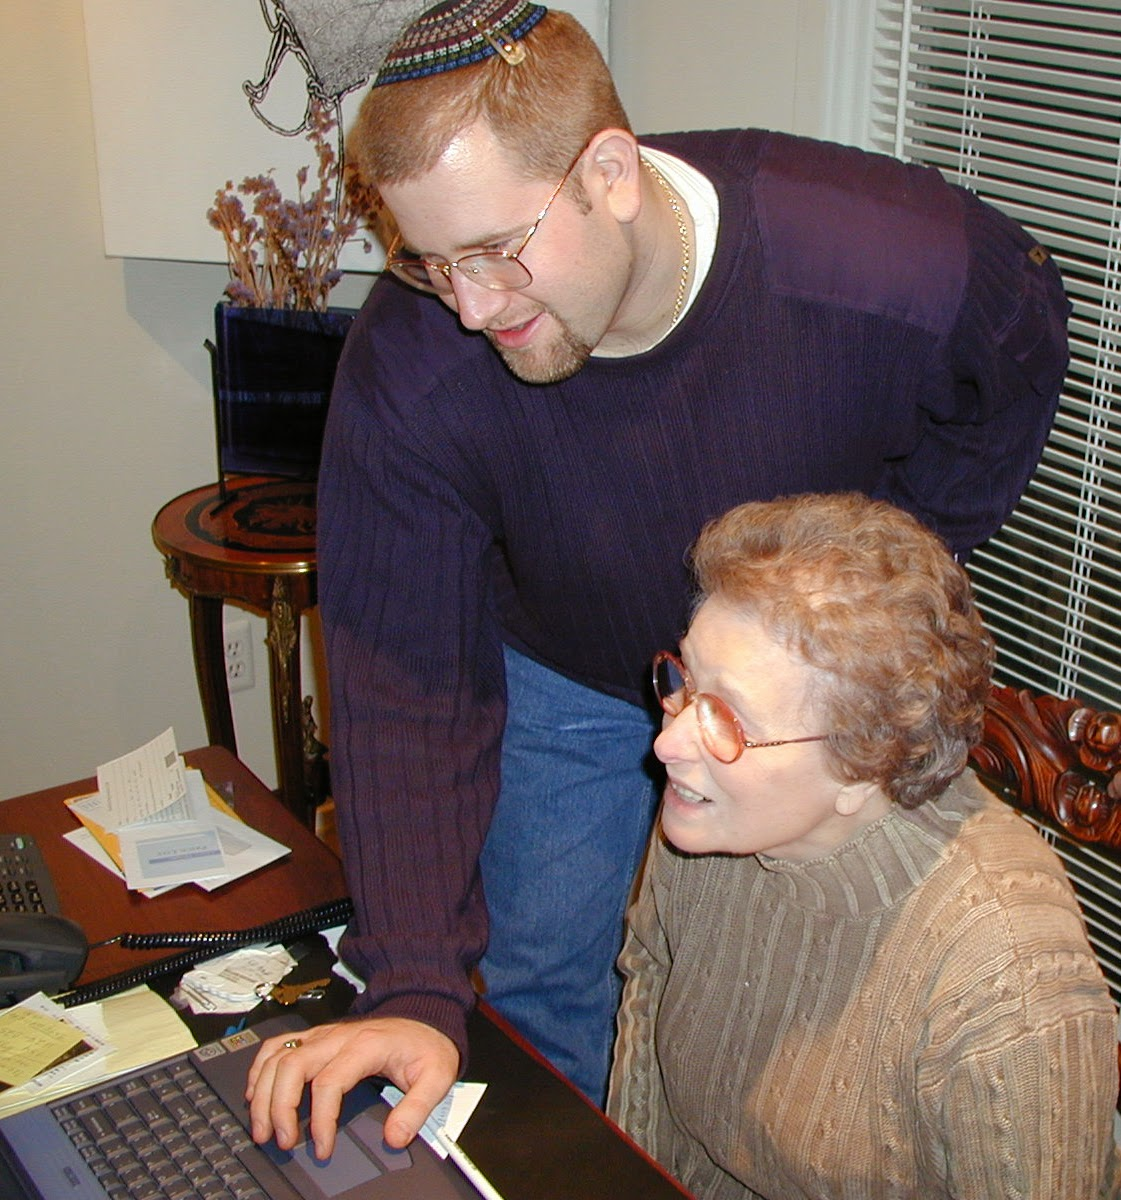 Adele Gudes and Rabbi Jason Miller Using Computer 2001